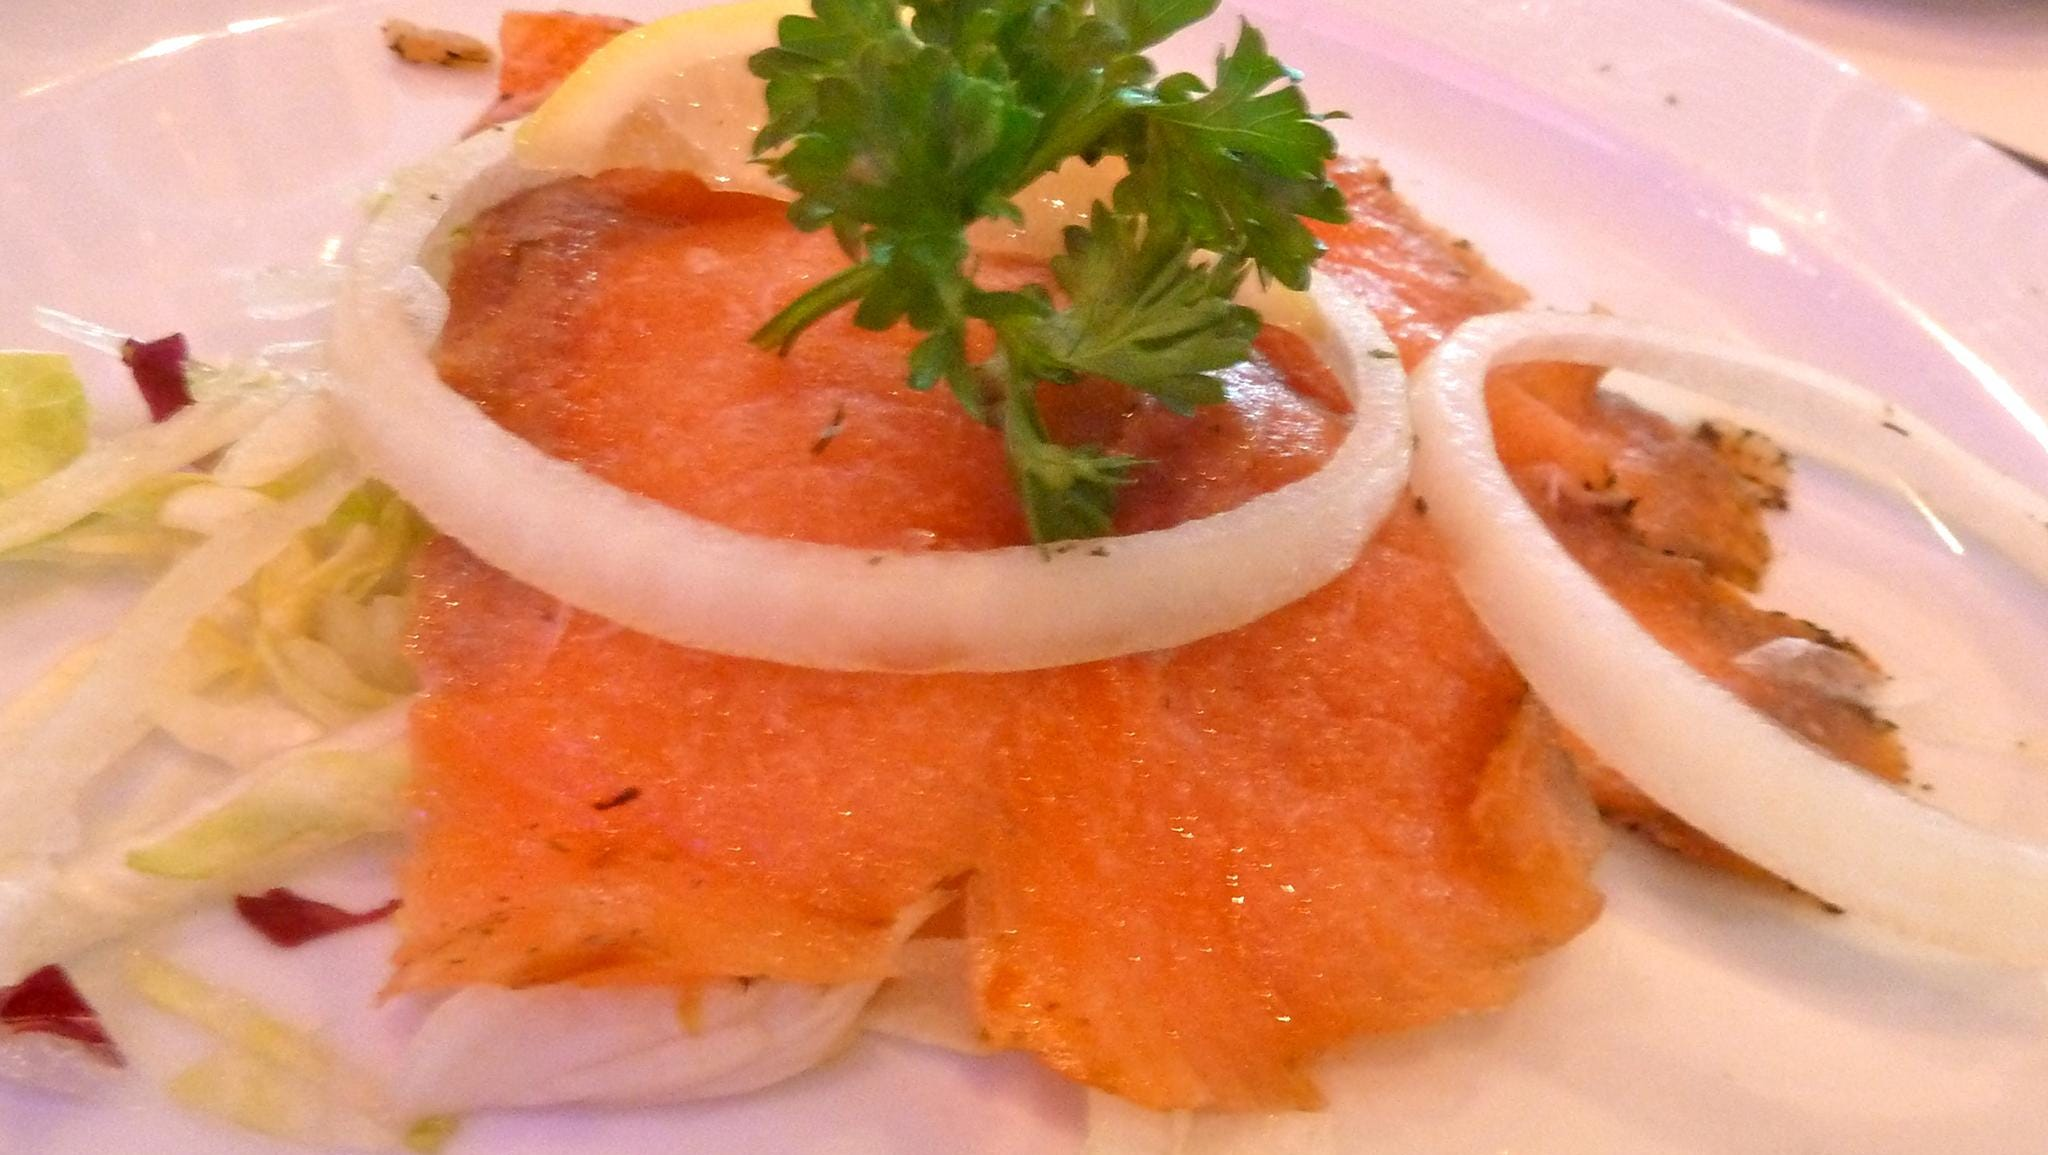 Lunch and dinner menus come with a selection of appetizers, such as lemon-drenched smoked salmon with slivered onions.